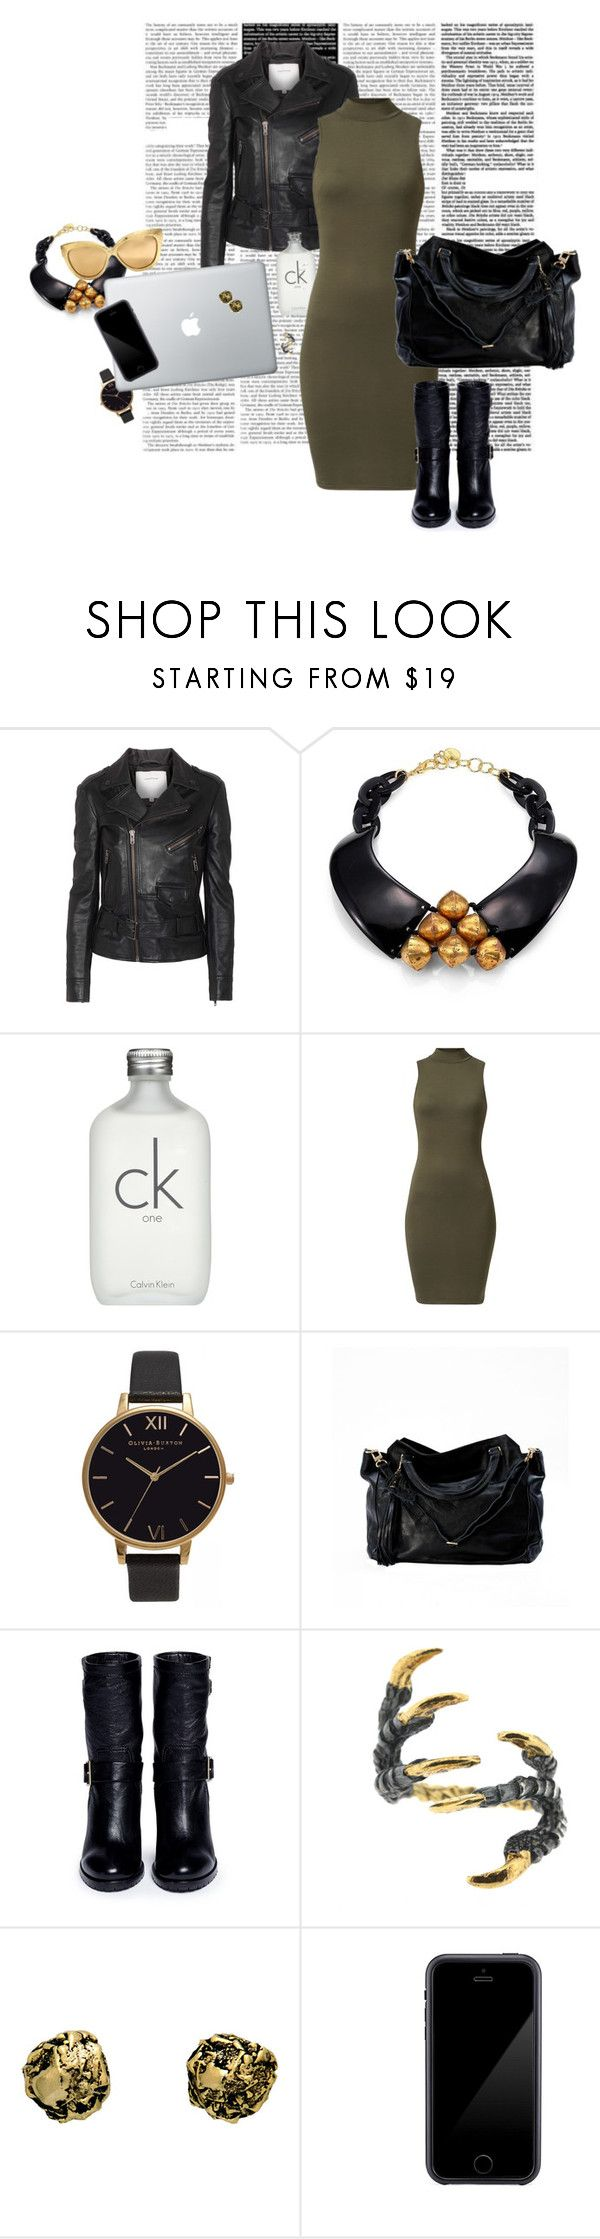 """High neck dress"" by nastiarl on Polyvore featuring moda, Surface To Air, Nest, Calvin Klein, Olivia Burton, Jimmy Choo, Tessa Metcalfe, Kamryn Dame, Squair y Linda Farrow"